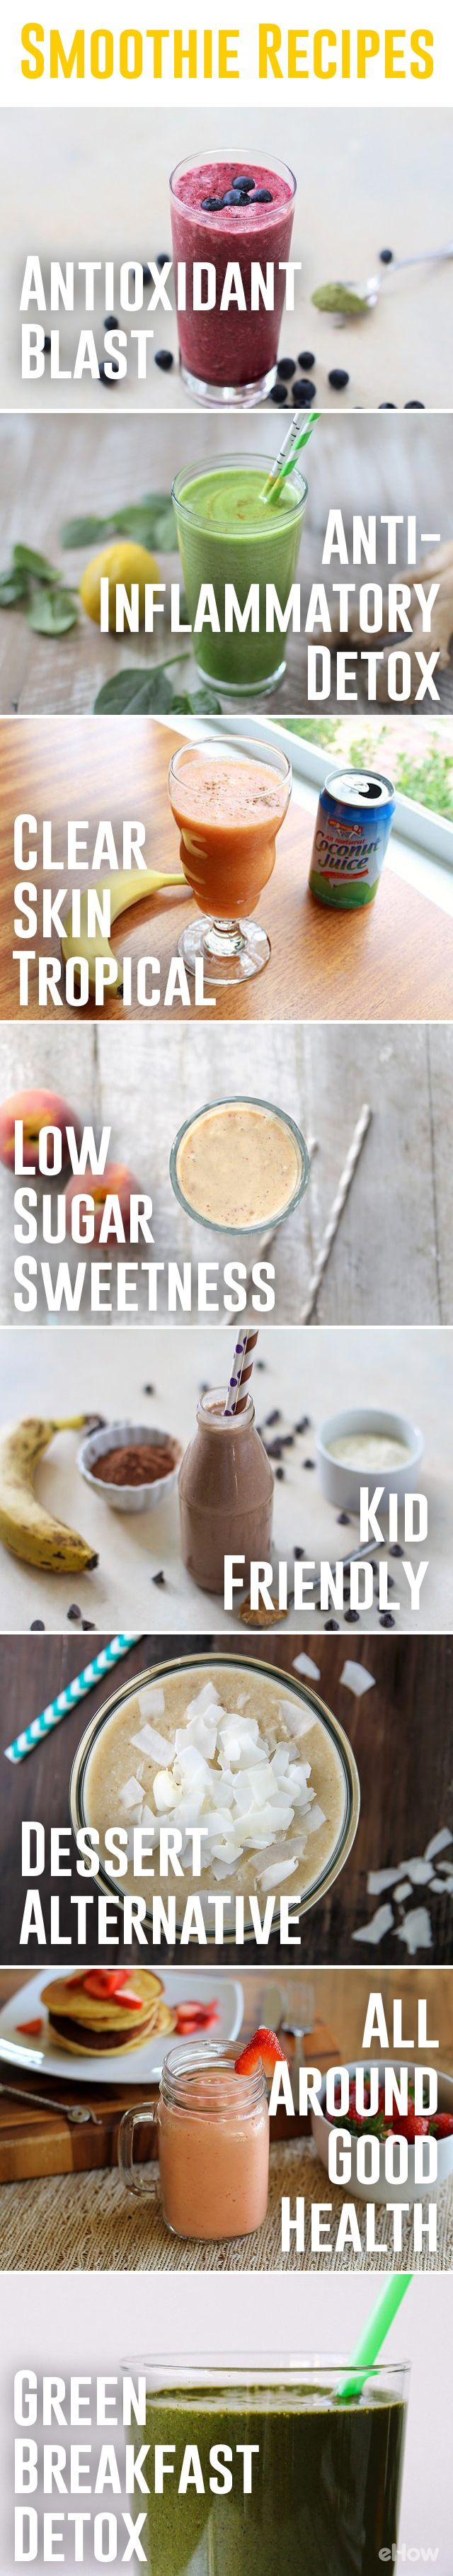 Smoothies for every occasion!  Check otu with combos are best for clear skin, antioxidants, anti-inflammatory detox , kid-friendly and more! All recipes here: http://www.ehow.com/how_2217514_make-smoothies.html?utm_source=pinterest.com&utm_medium=referral&utm_content=curated&utm_campaign=fanpage